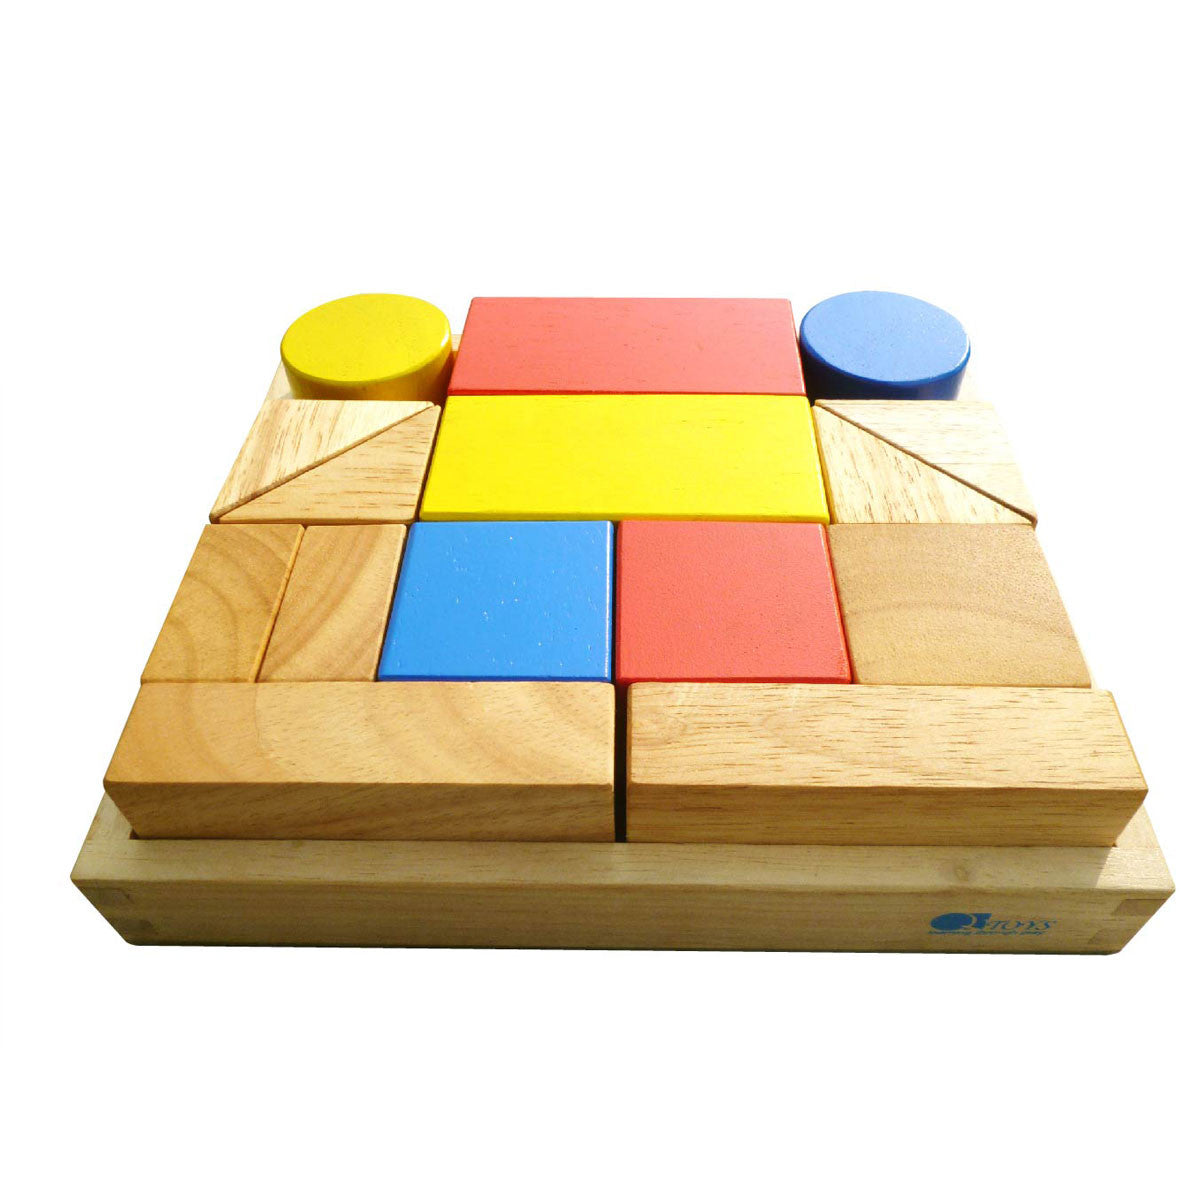 QToys Wooden Sound Blocks QToys Wooden Blocks 15 Pieces at Little Earth Nest Eco Shop